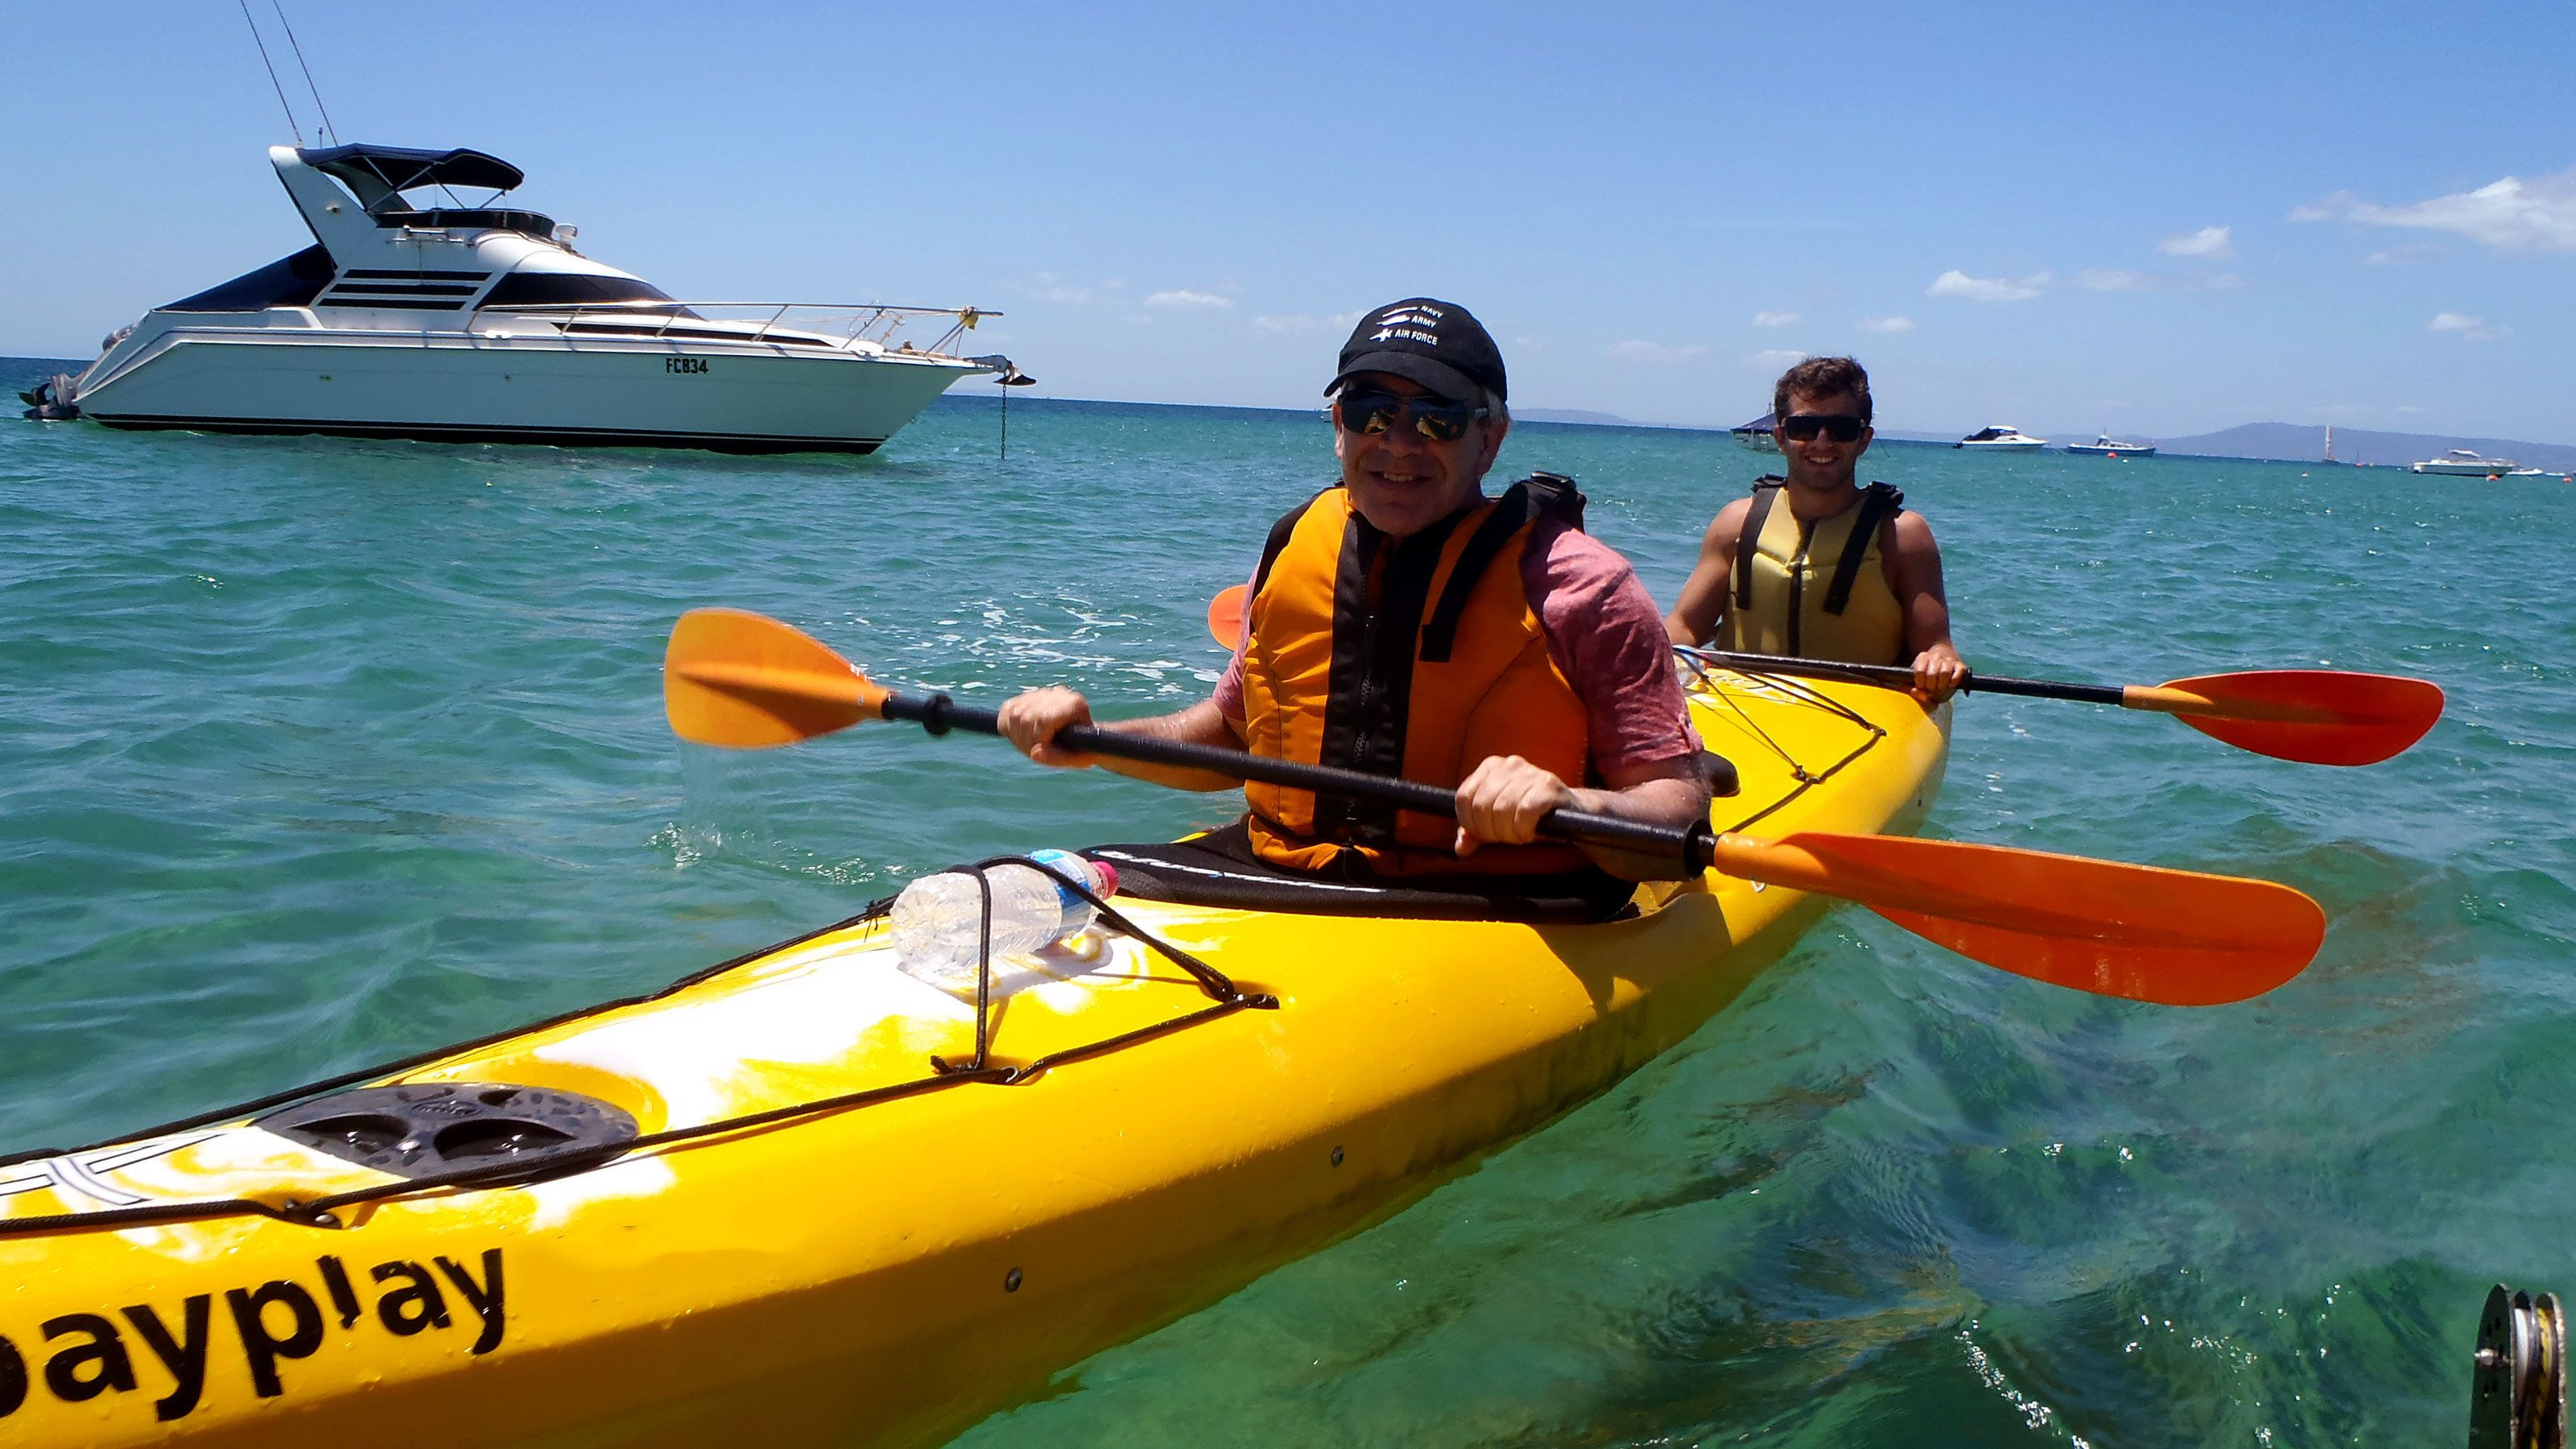 Two sea kayakers near a boat at Mornington Peninsula